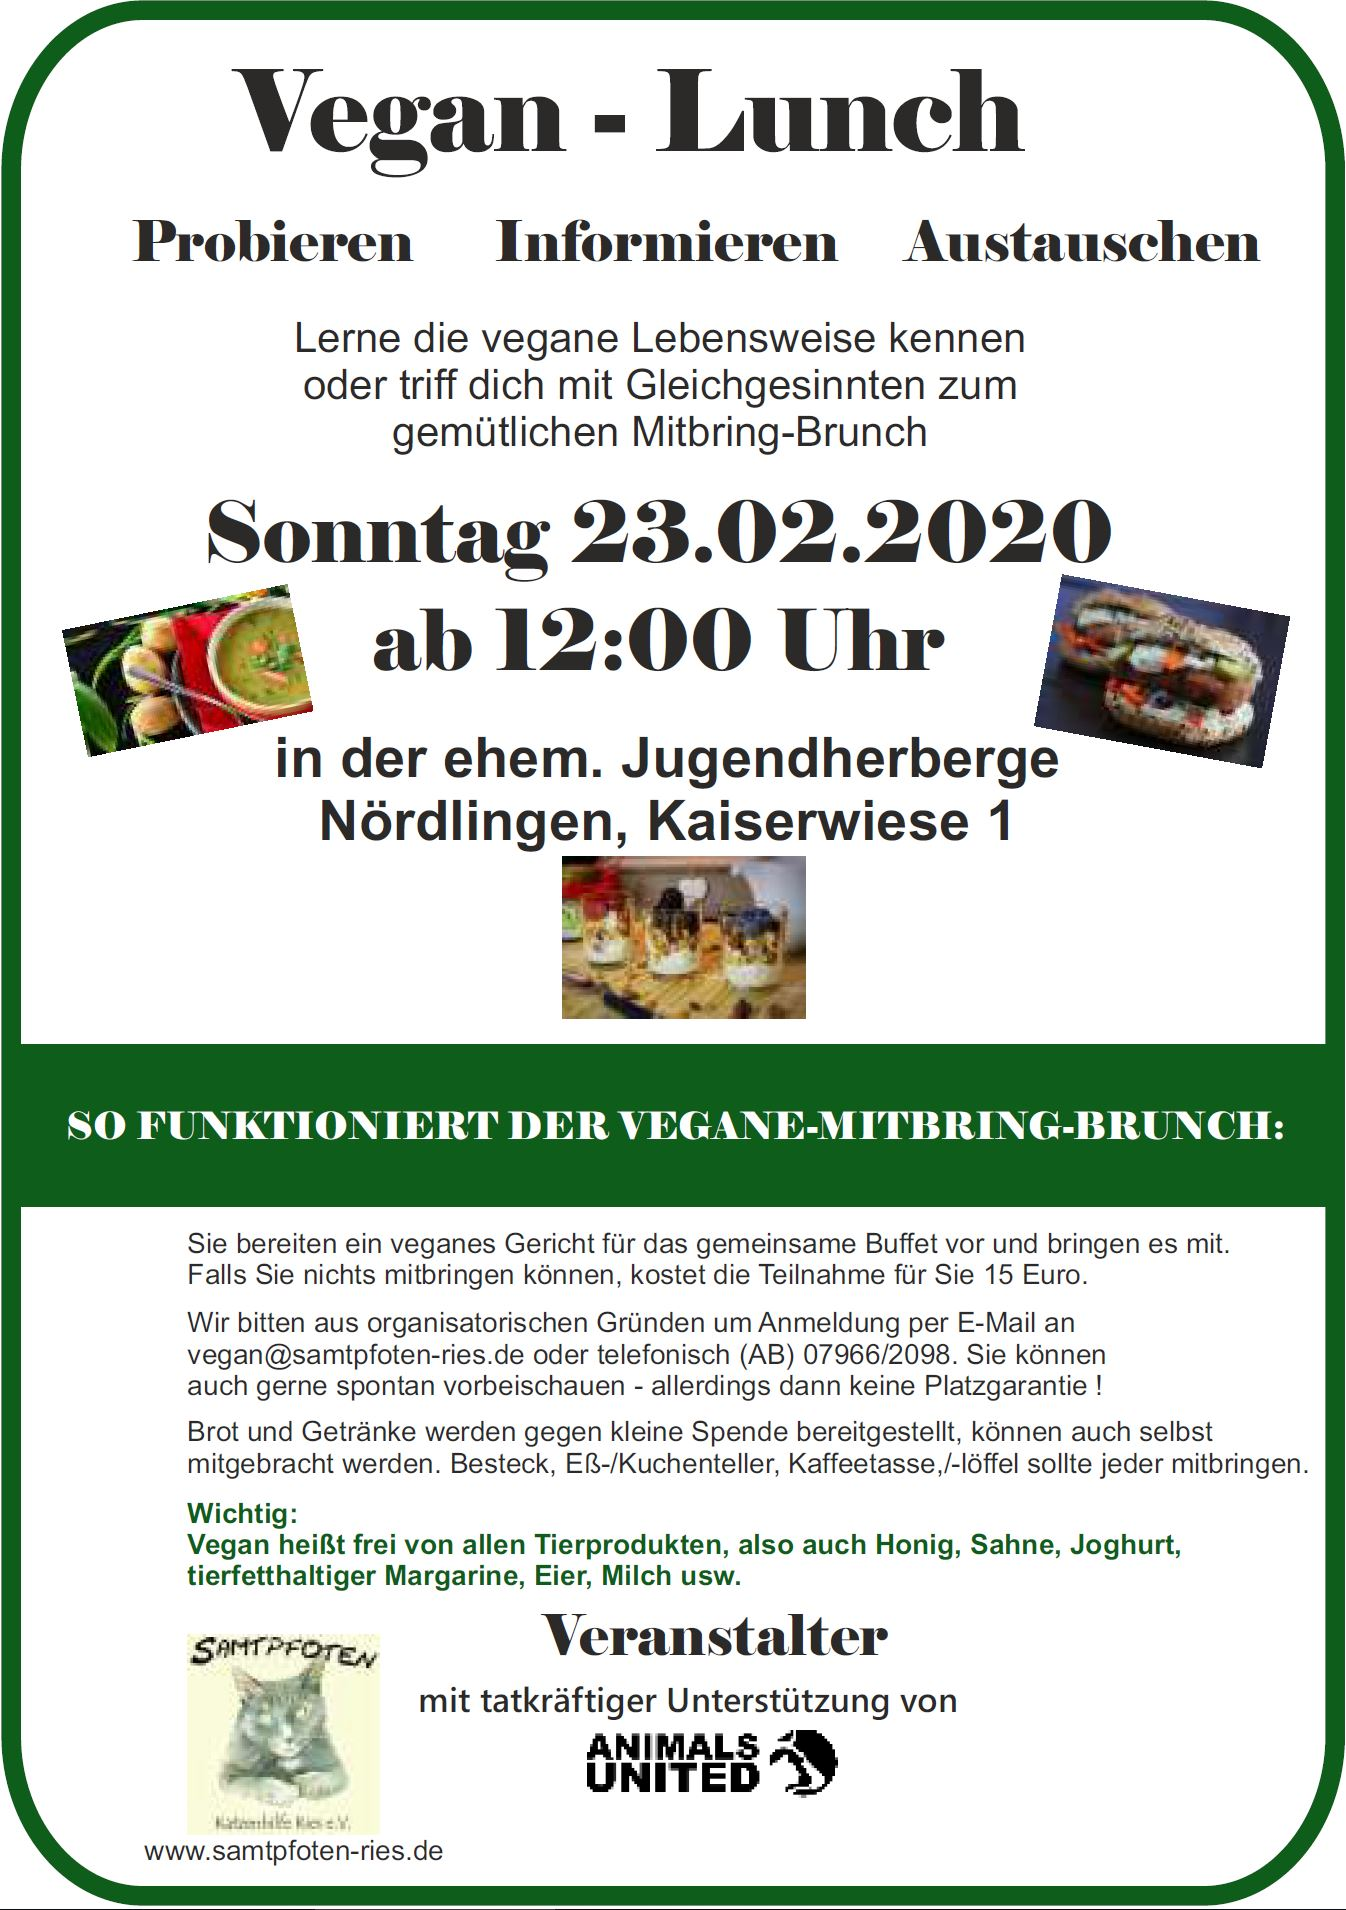 Vegan Lunch am 23.02.2020